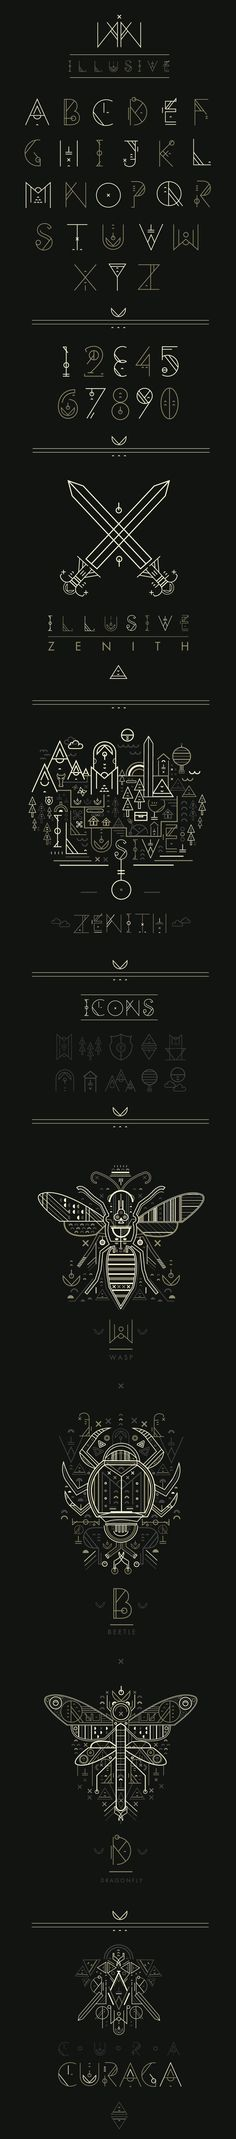 Illusive by Petros Afshar (font possibility/inspiration)